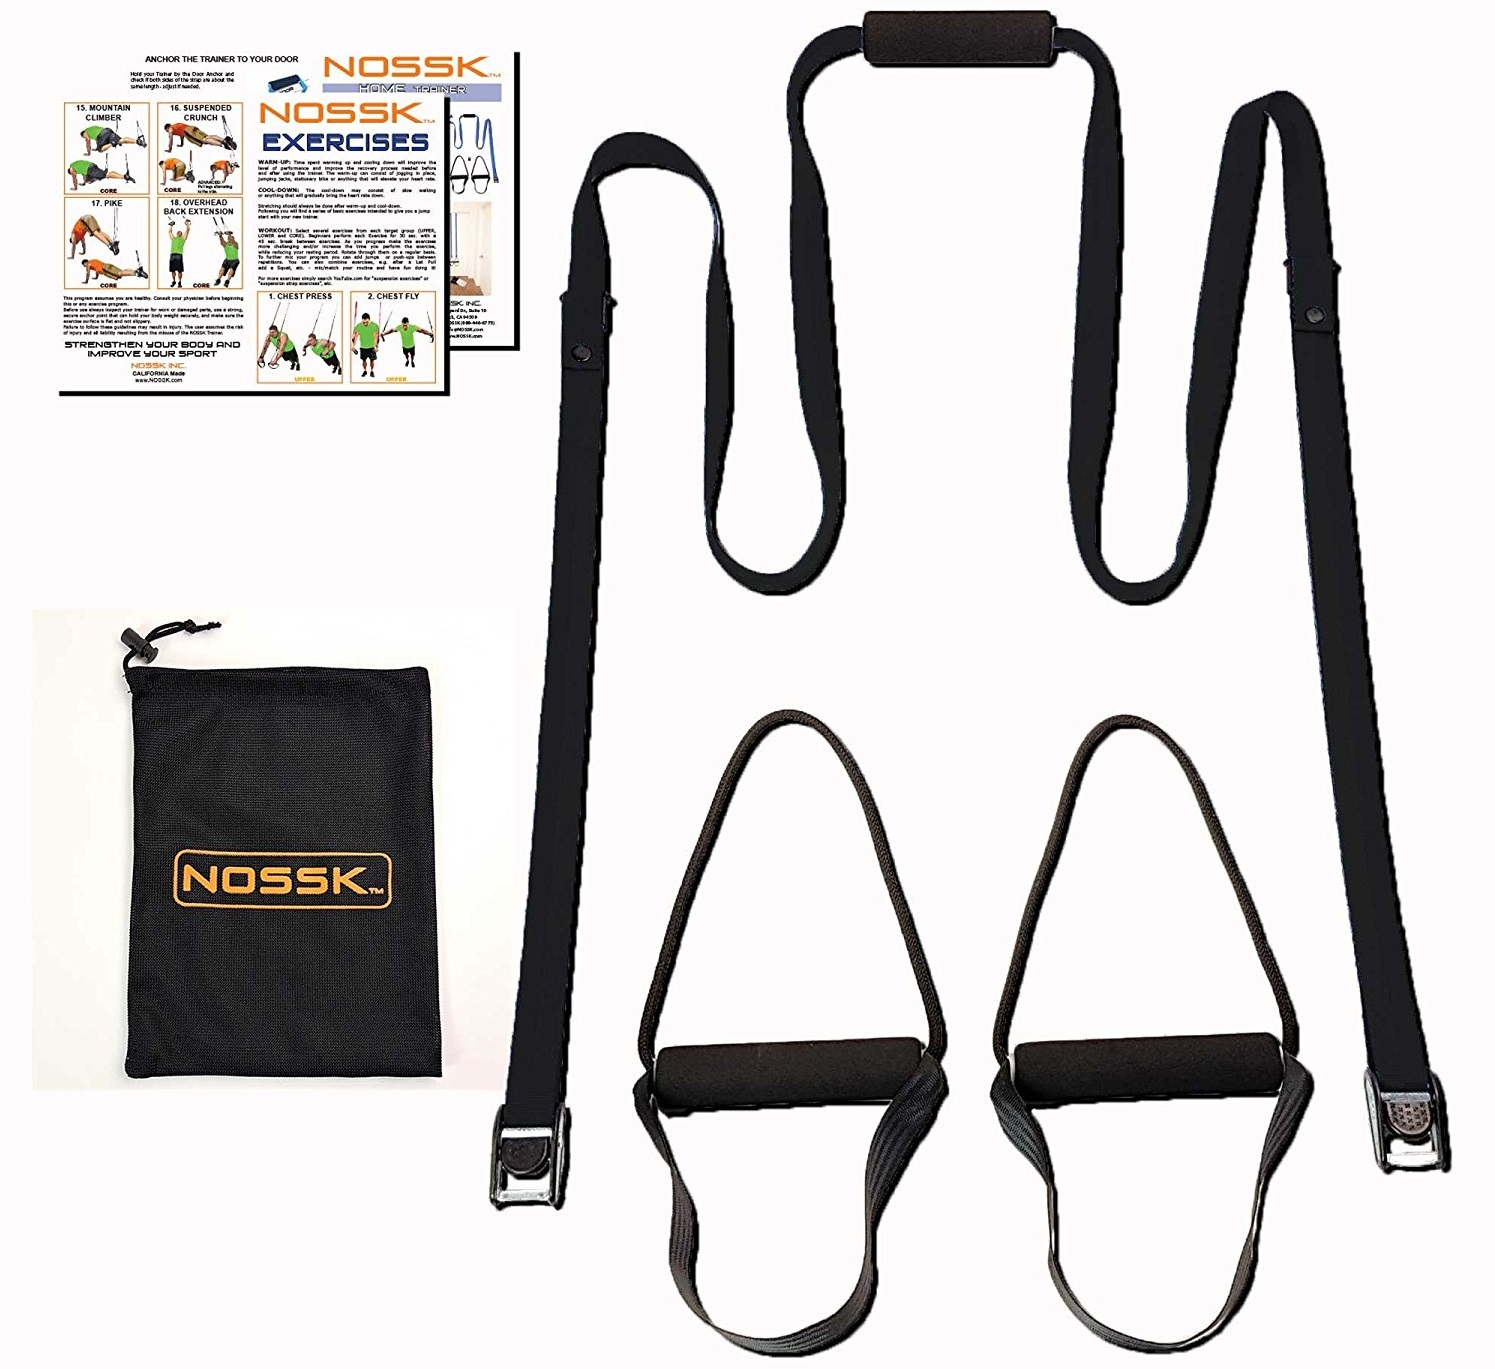 nossk workout straps